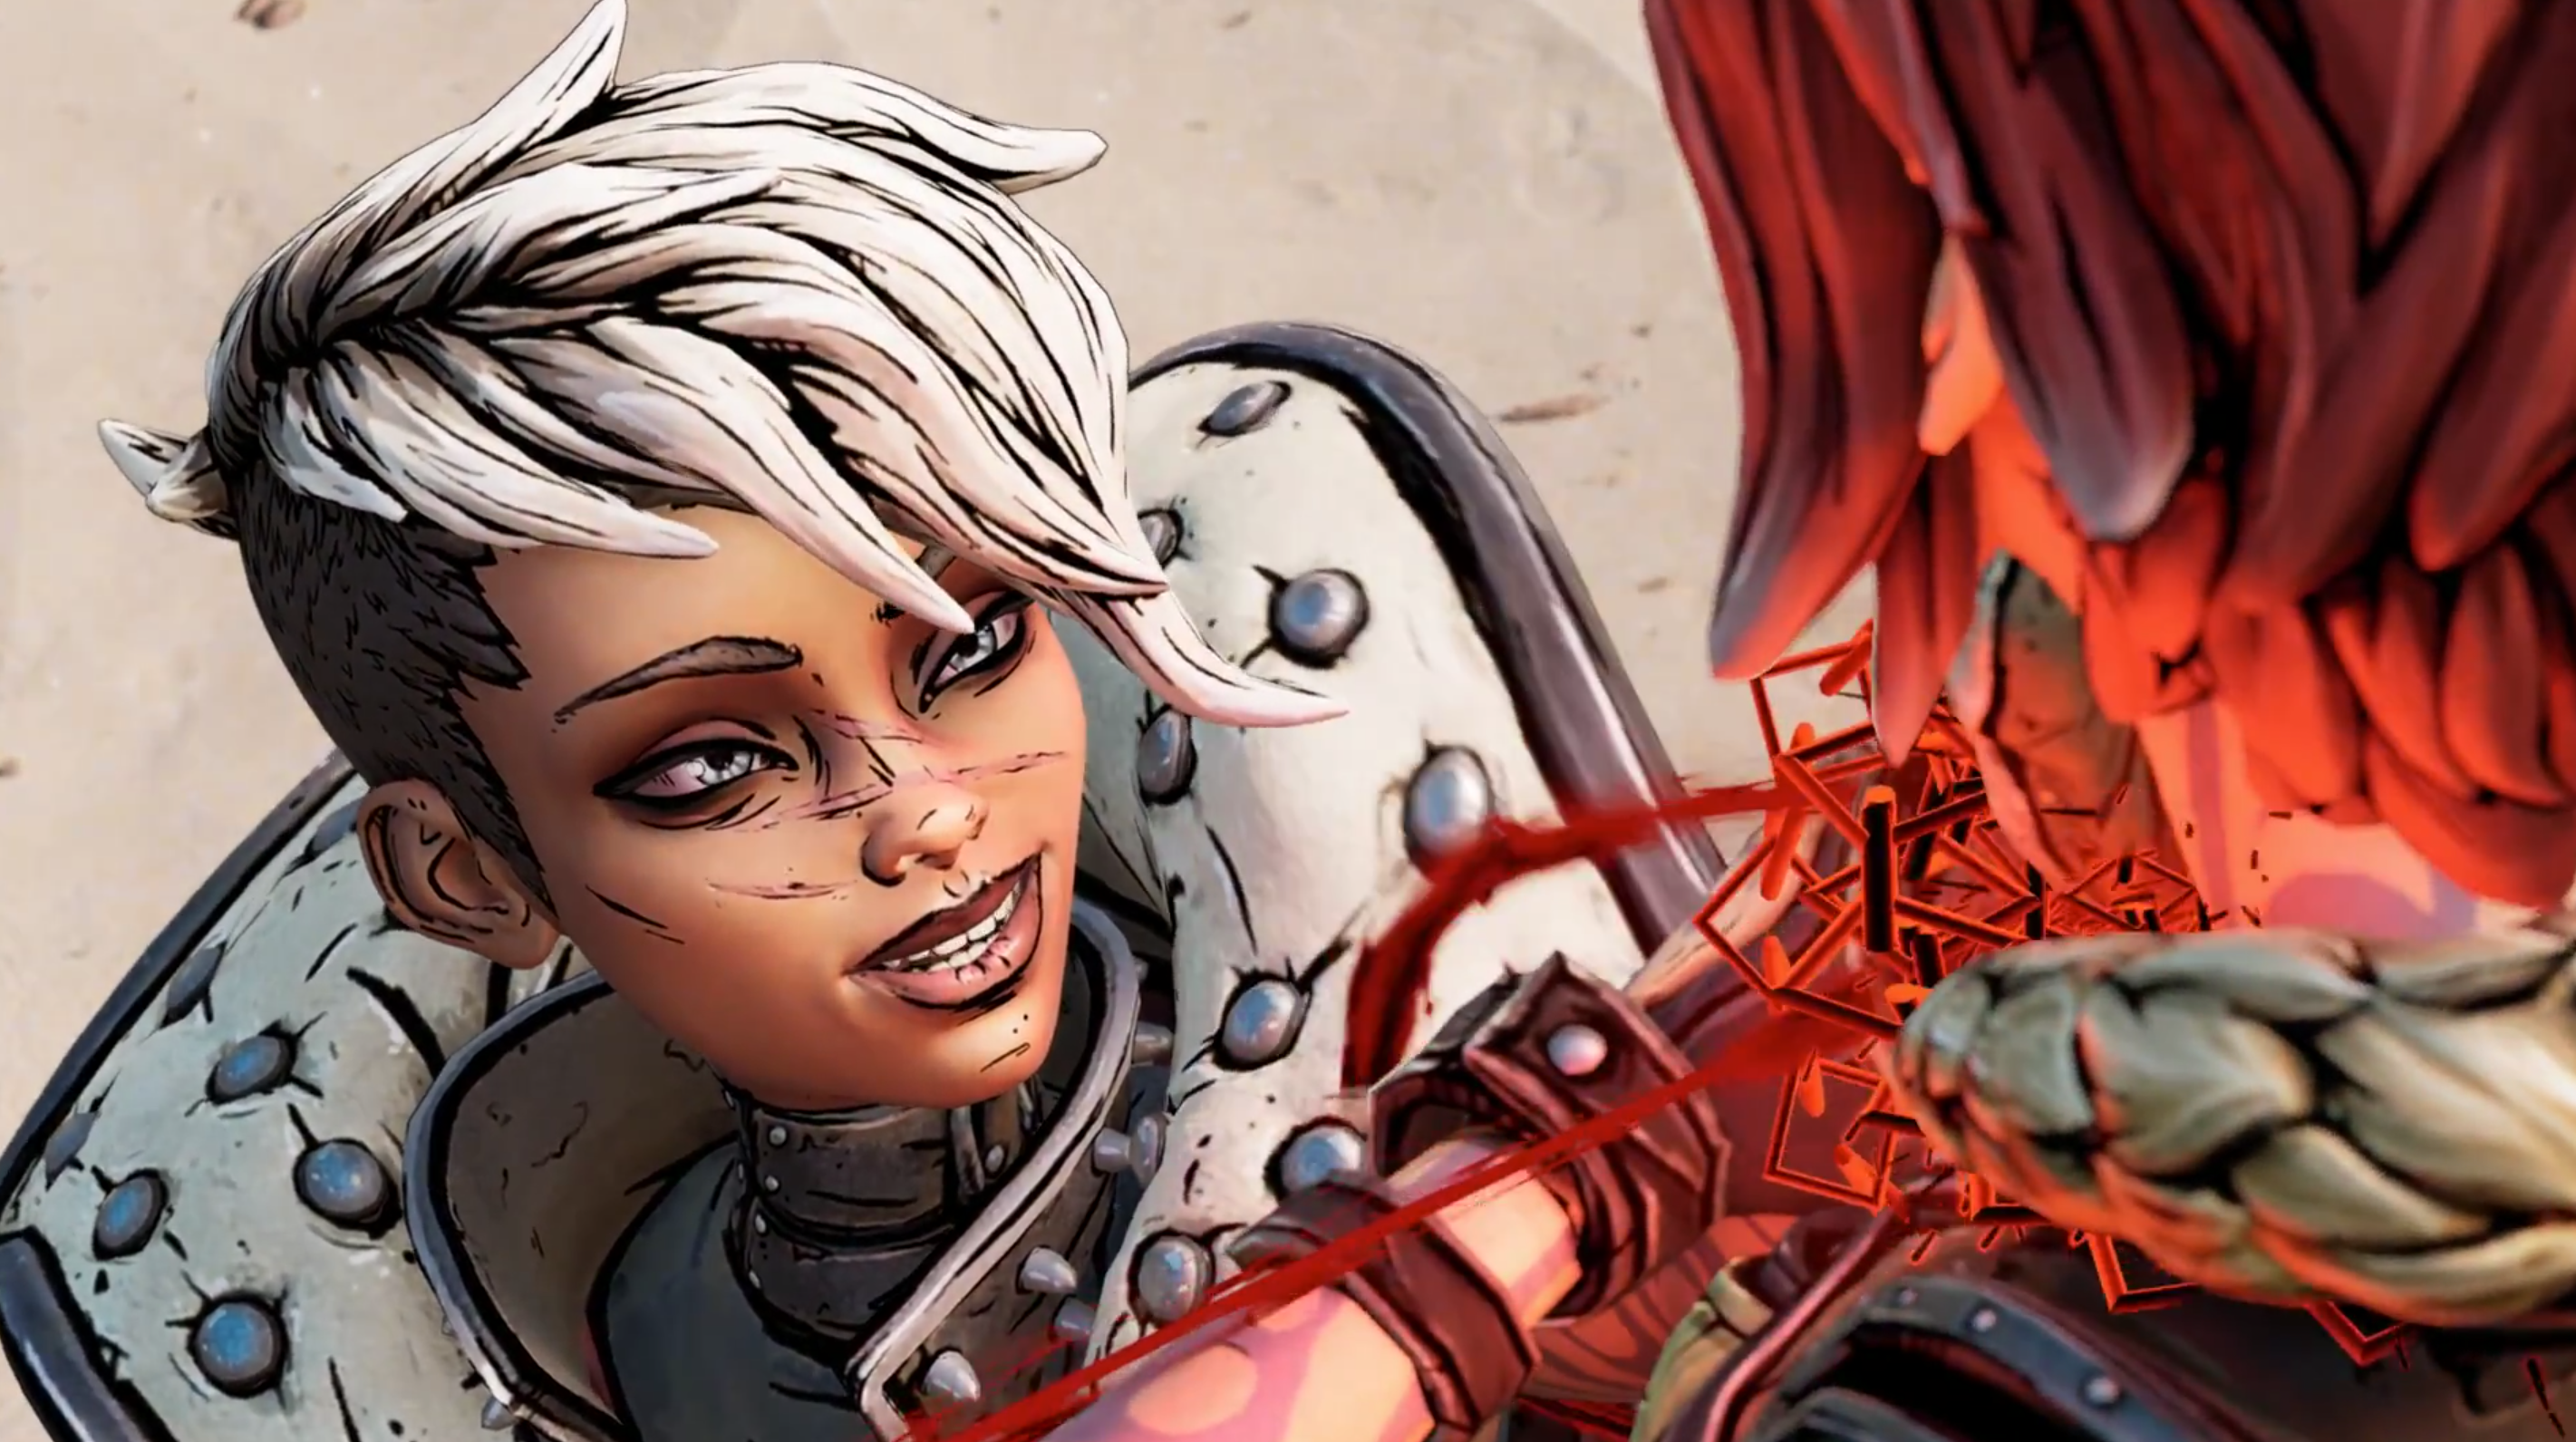 Borderlands 3 Launches with Denuvo Anti-Tamper DRM - VG247